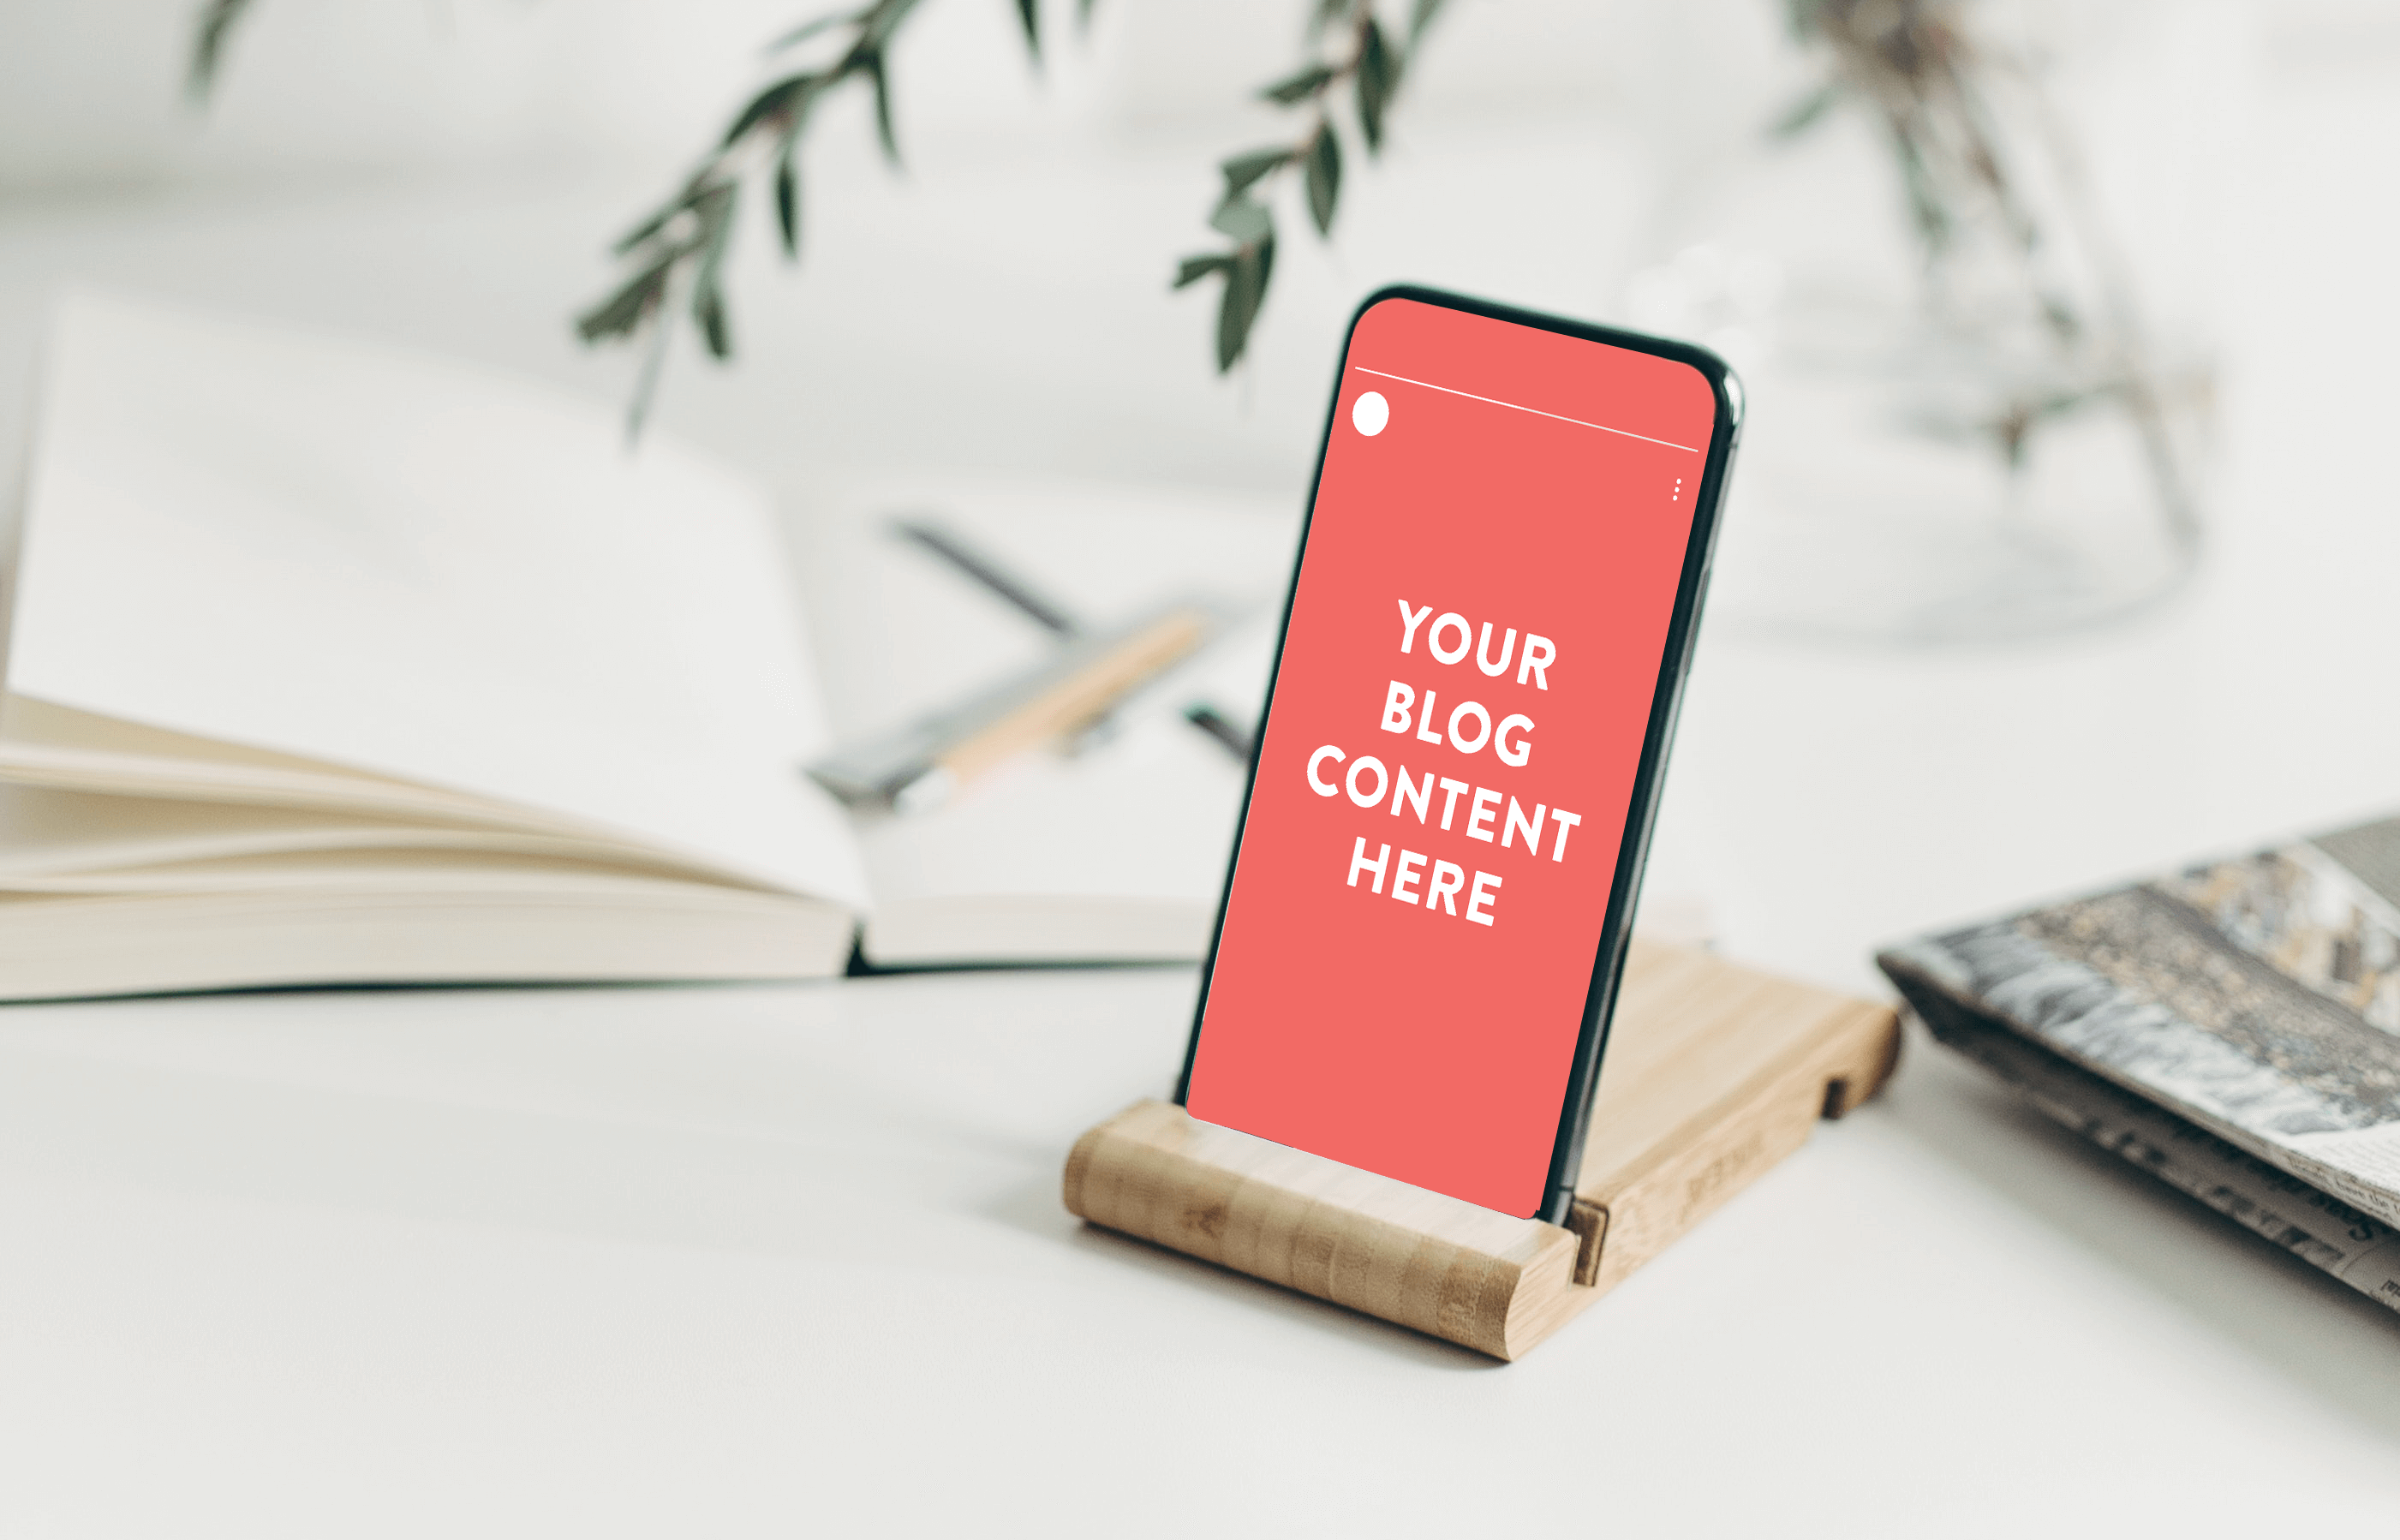 Image showing a phone screen with an instagram story that says your blog content here